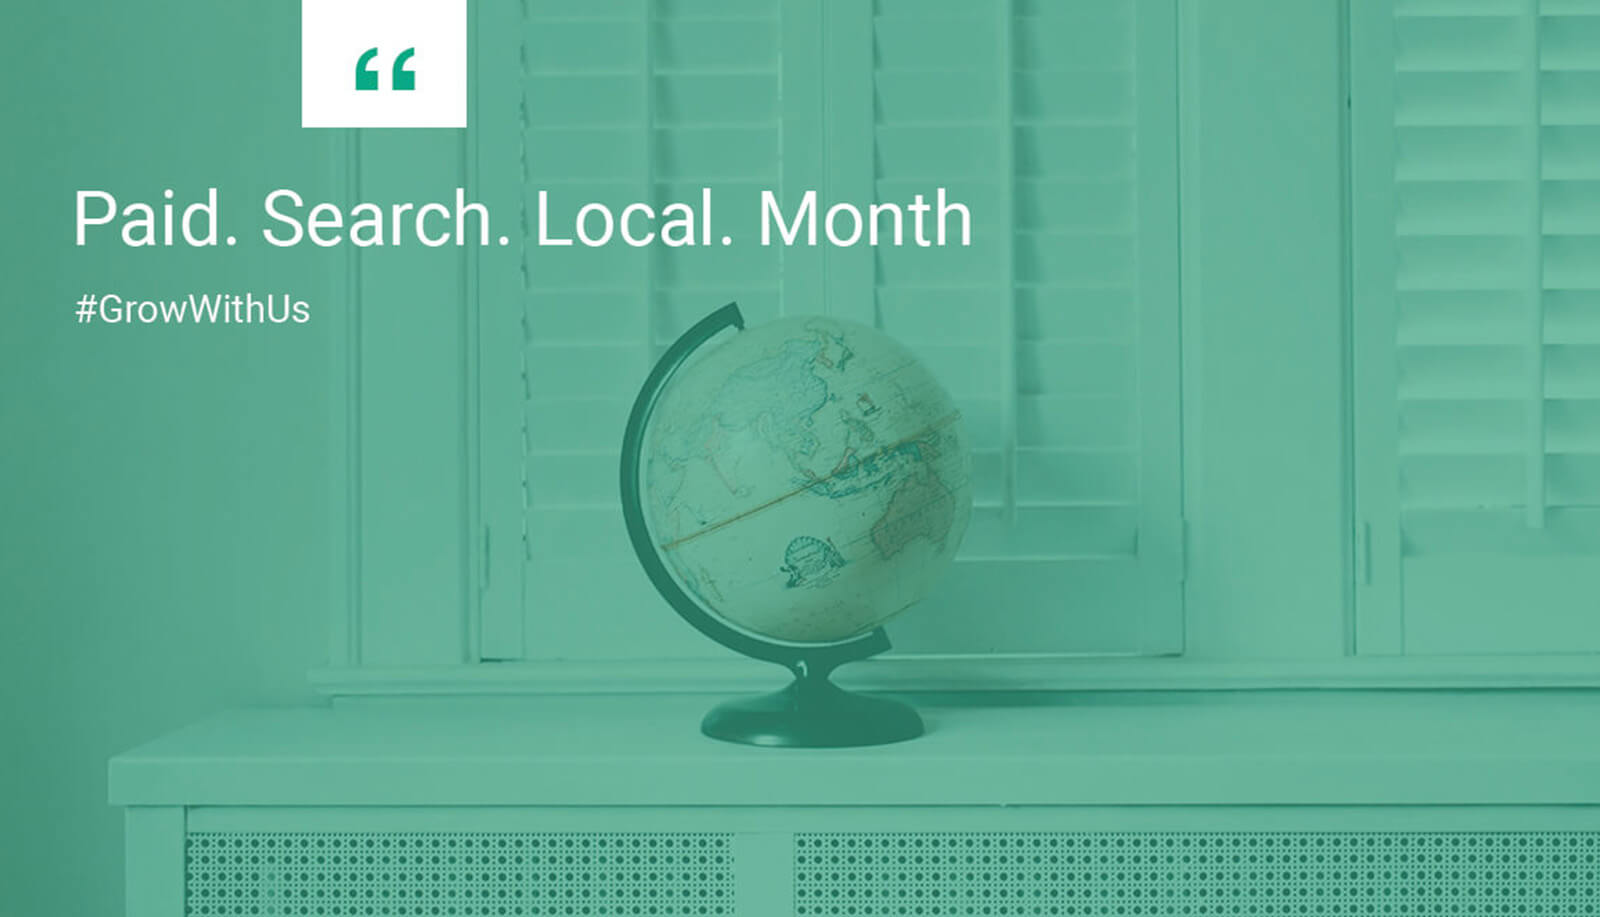 Paid. Search. Local. Month